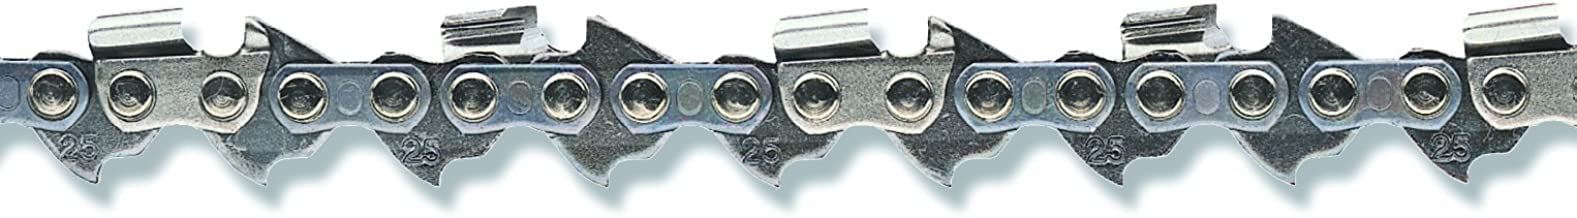 OREGON 25AP072G 72 Drive Link Micro Chisel Chain, 1/4-Inch Pitch